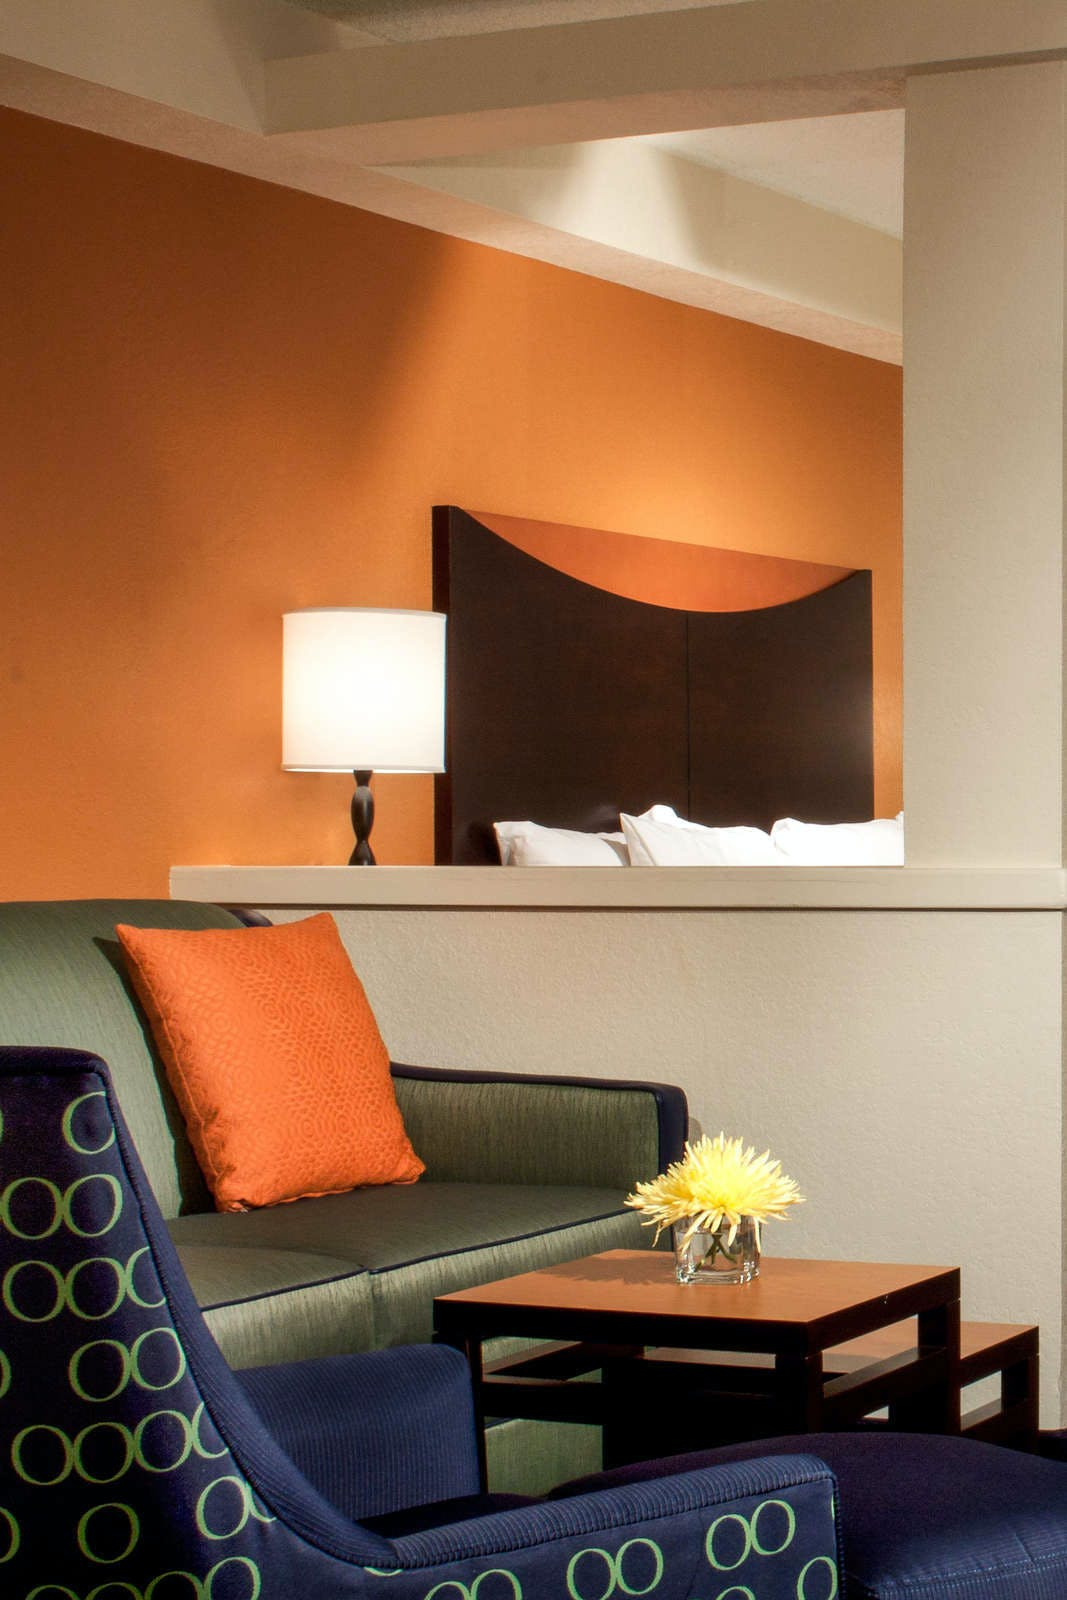 Fairfield Inn by Marriott Kennesaw Atlanta